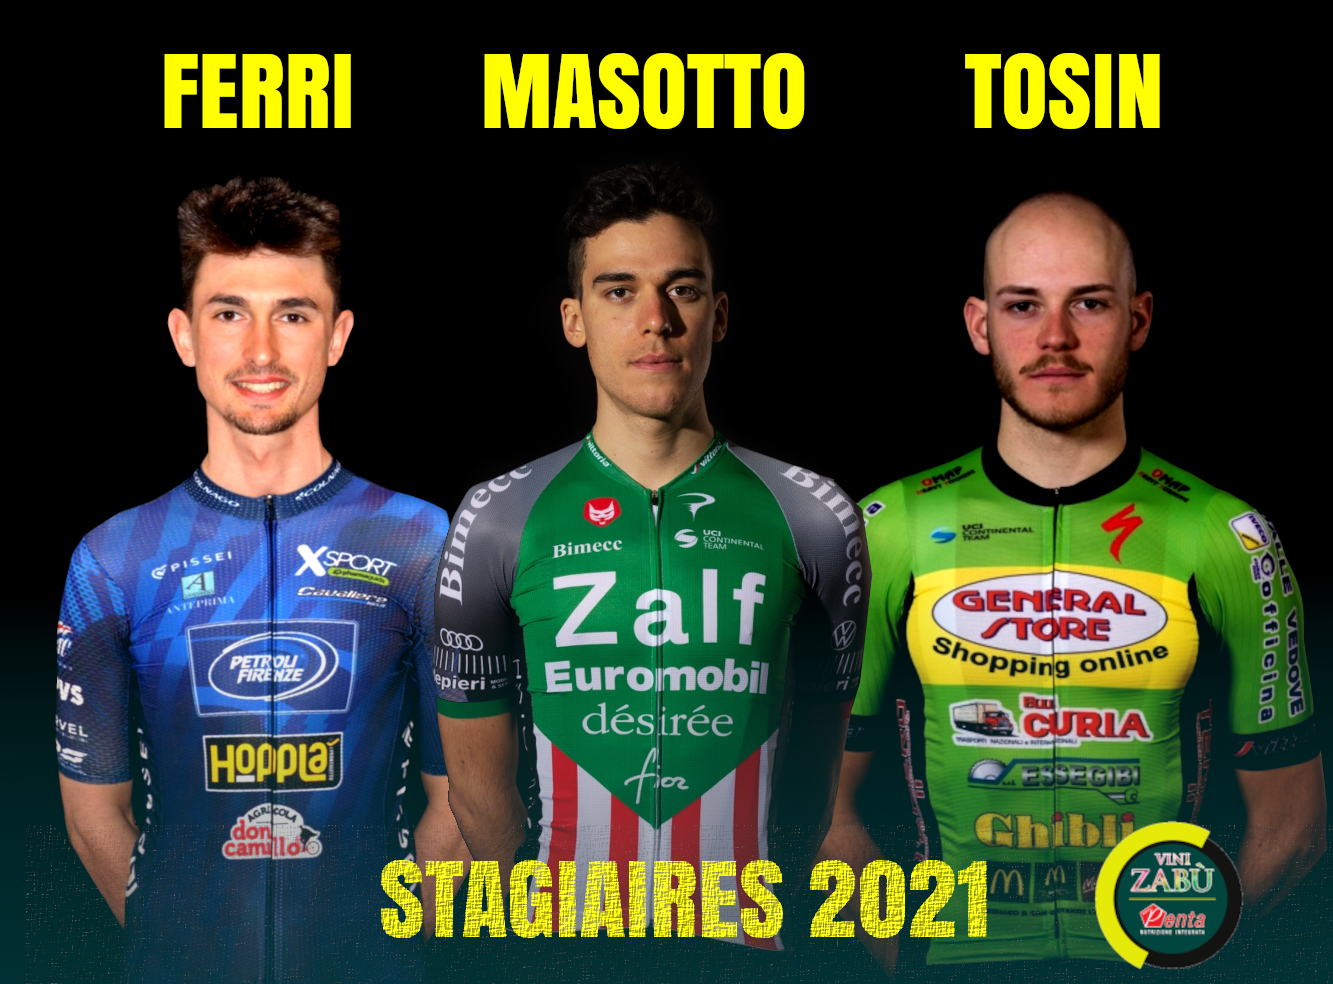 STAGIAIRES 2021